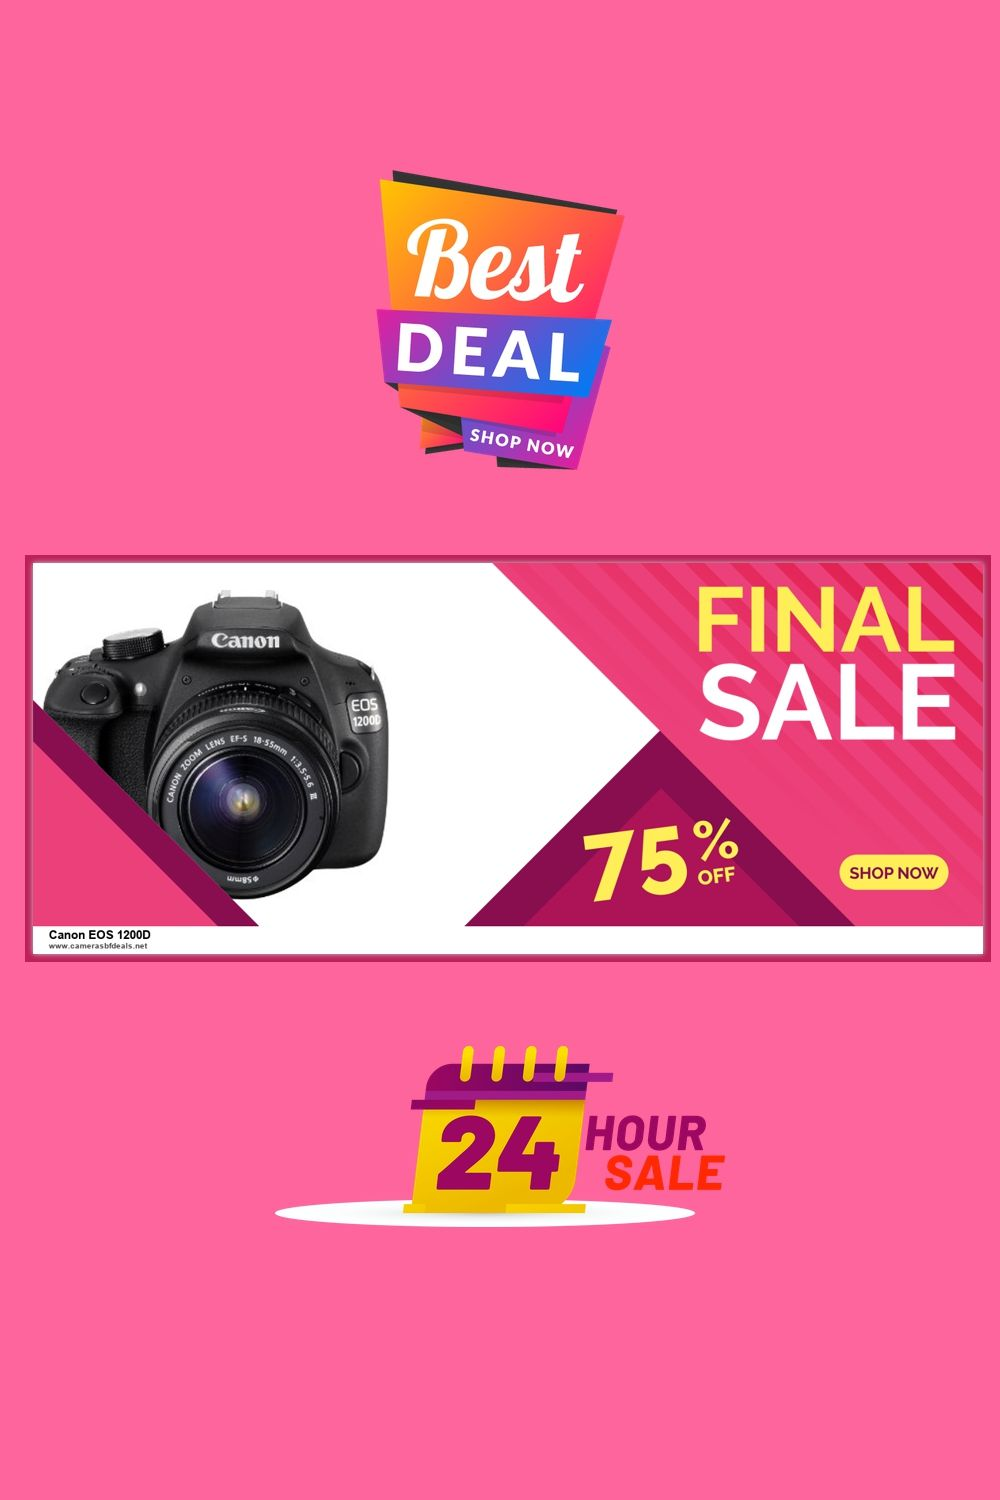 Top 5 Canon Eos 1200d Black Friday Sales Deals 2020 In 2020 Eos Black Friday Camera Canon Eos